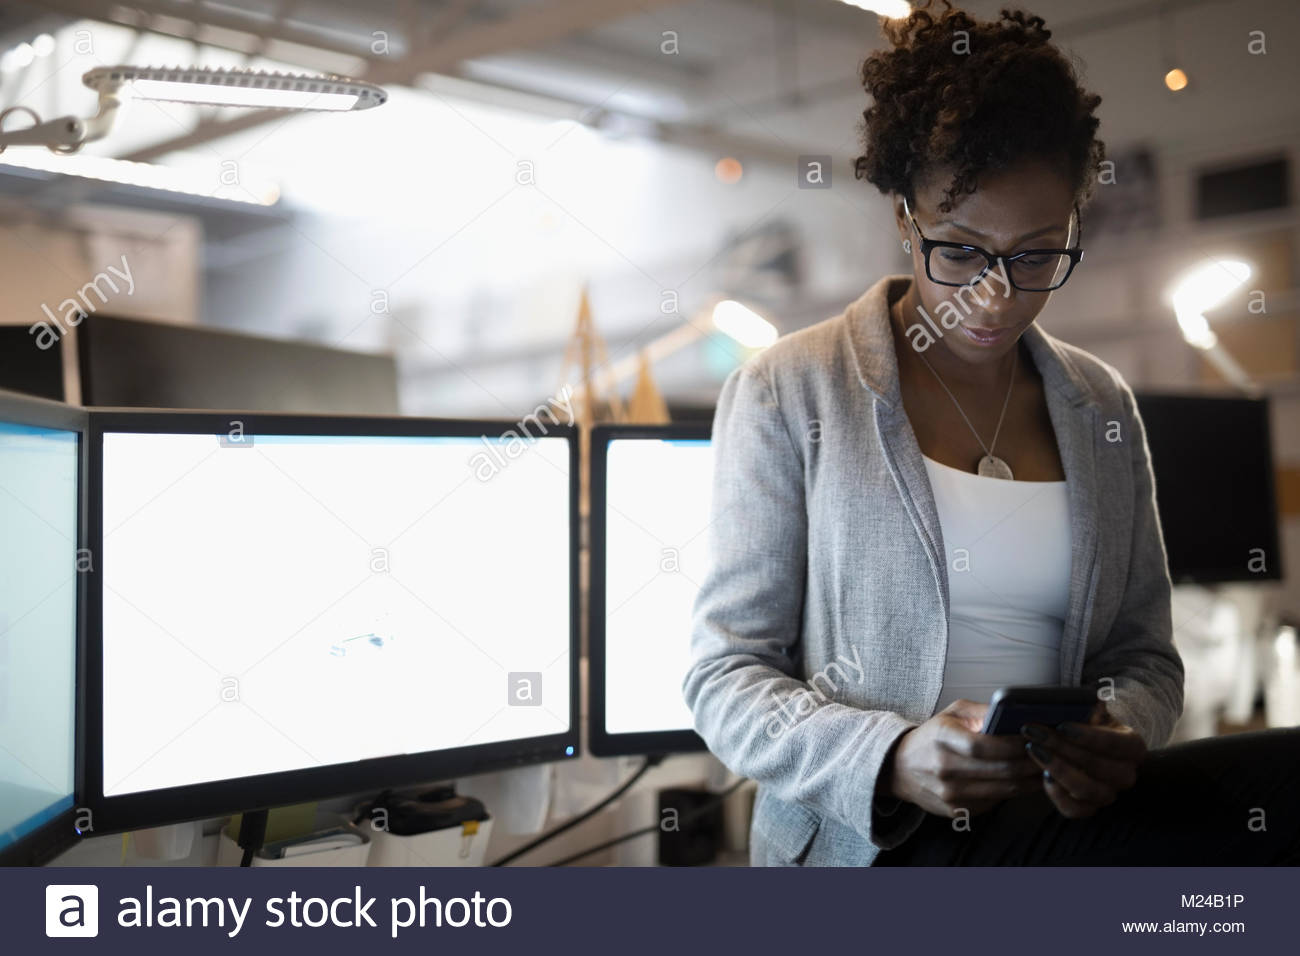 Dedicated businesswoman using smart phone at computers in office - Stock Image